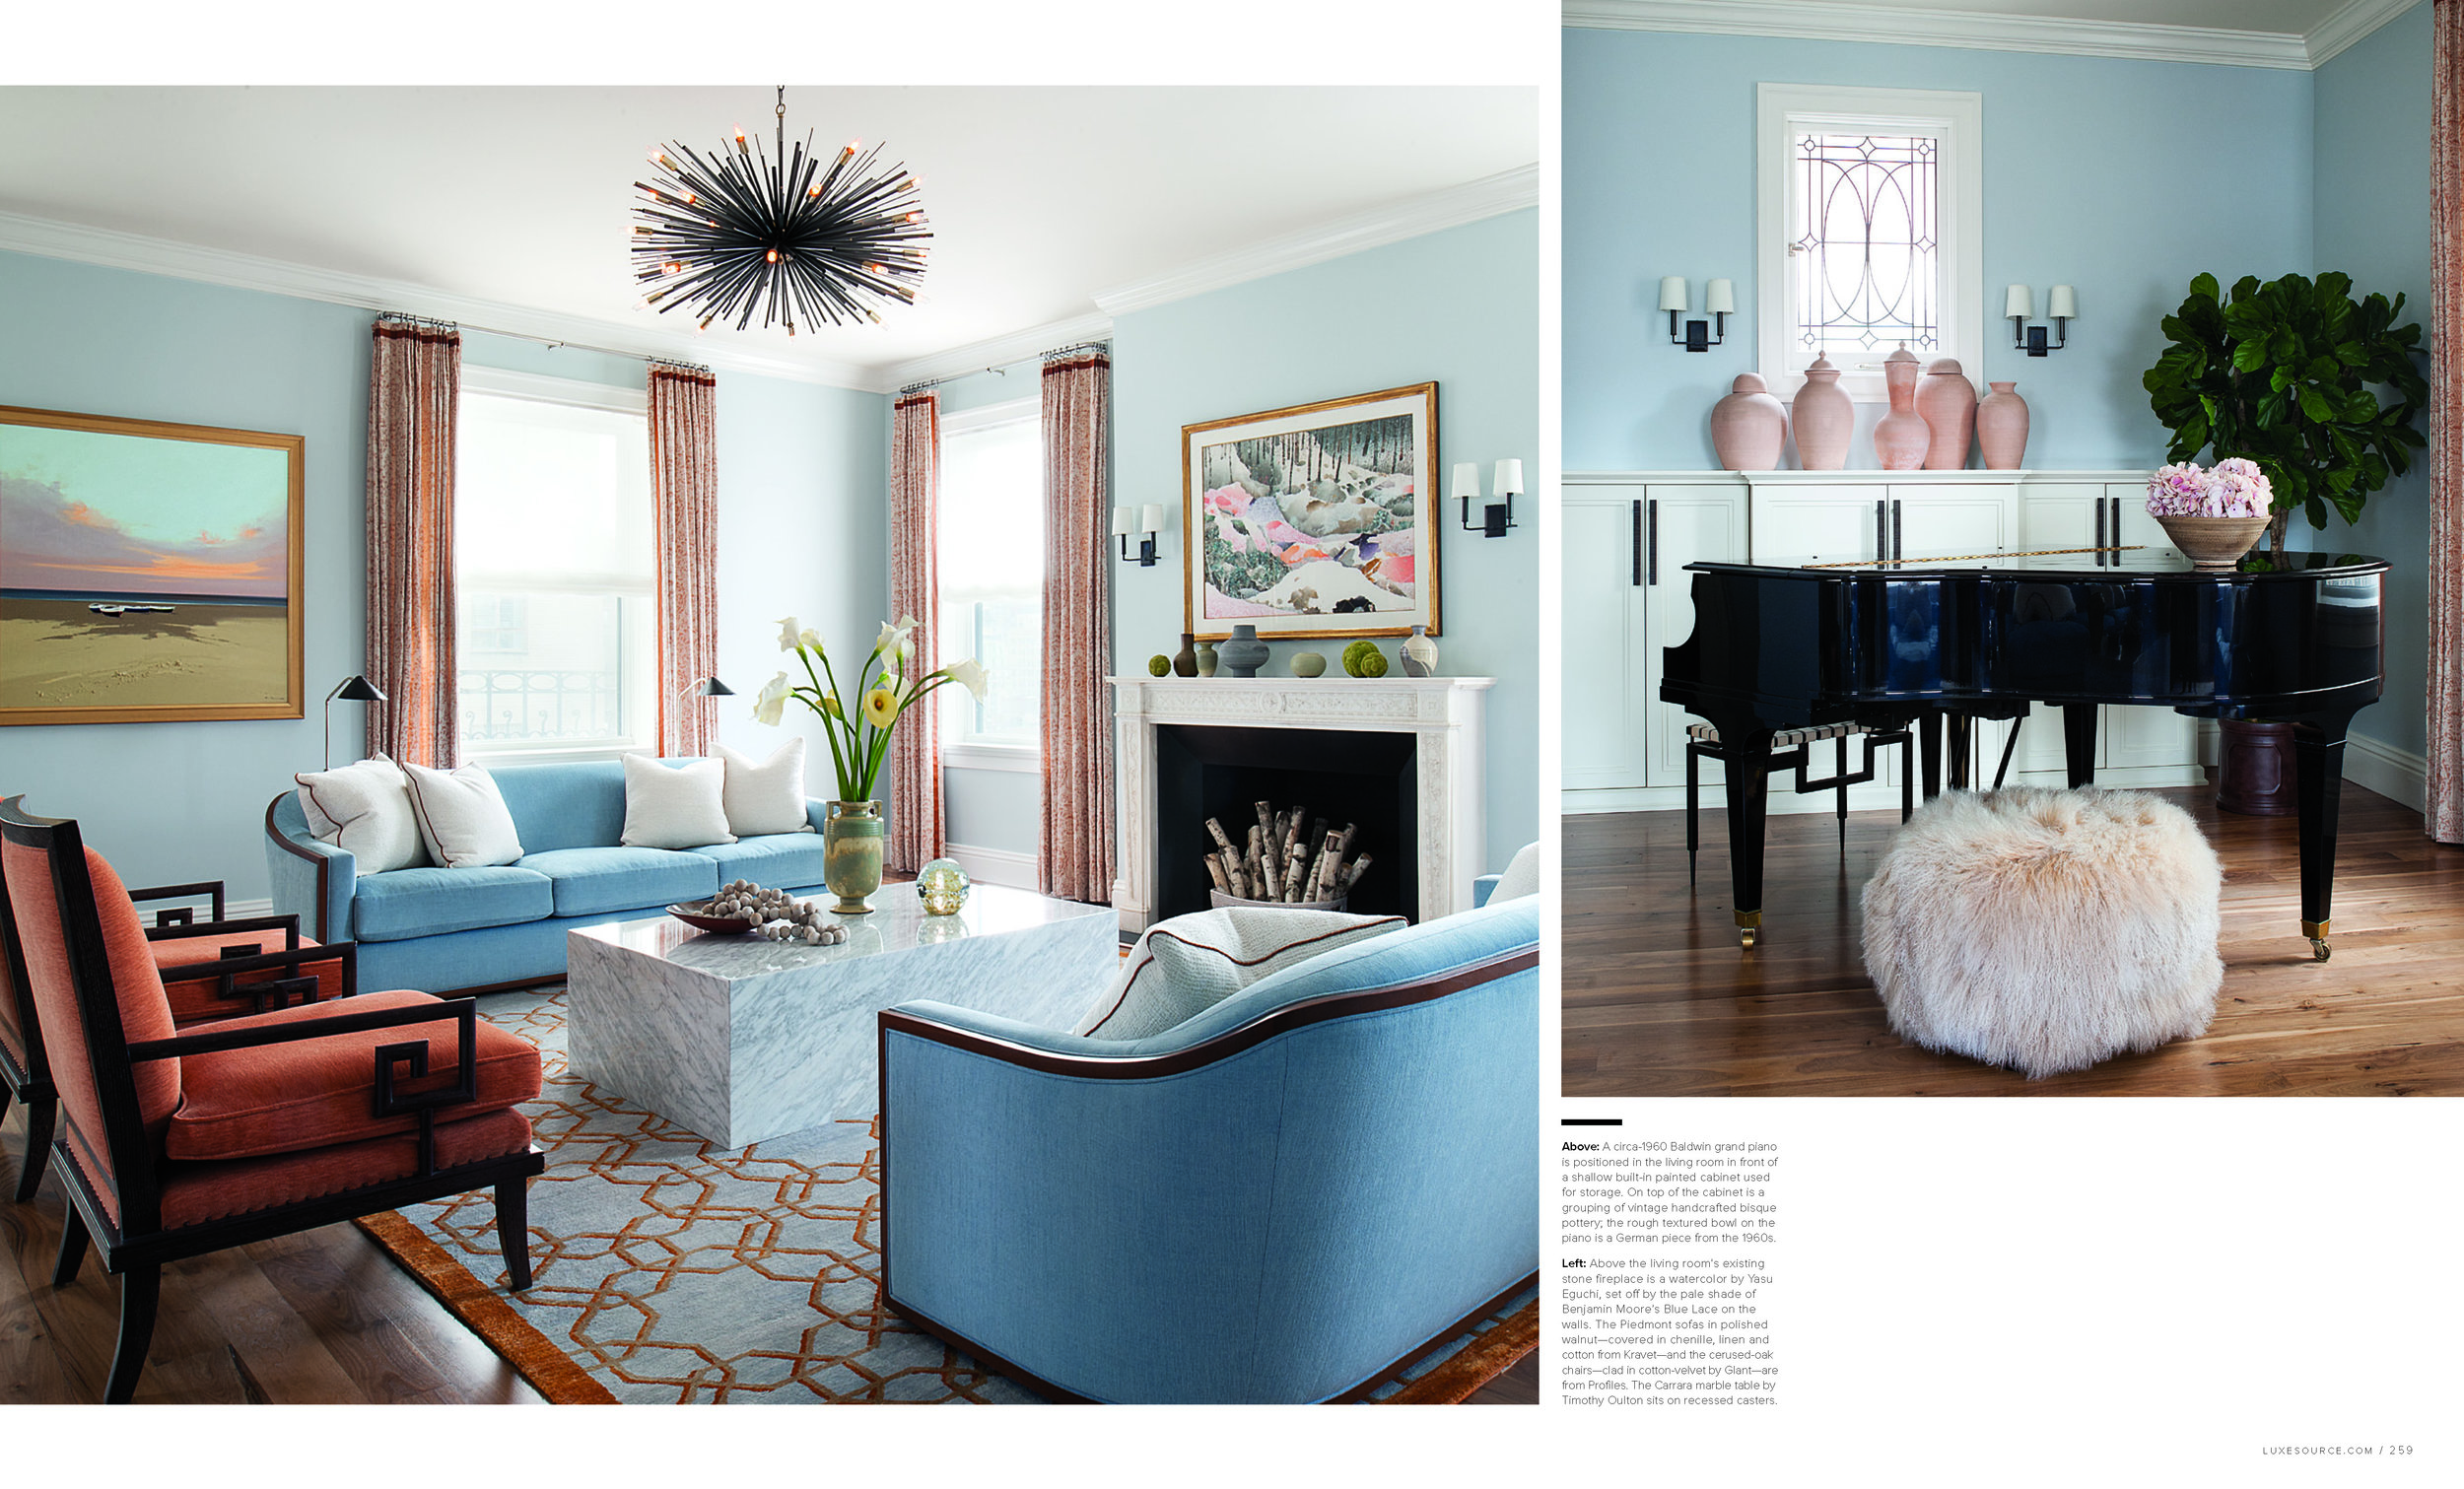 Luxe Interiors + Design 2018 January - Article_Page_3.jpg